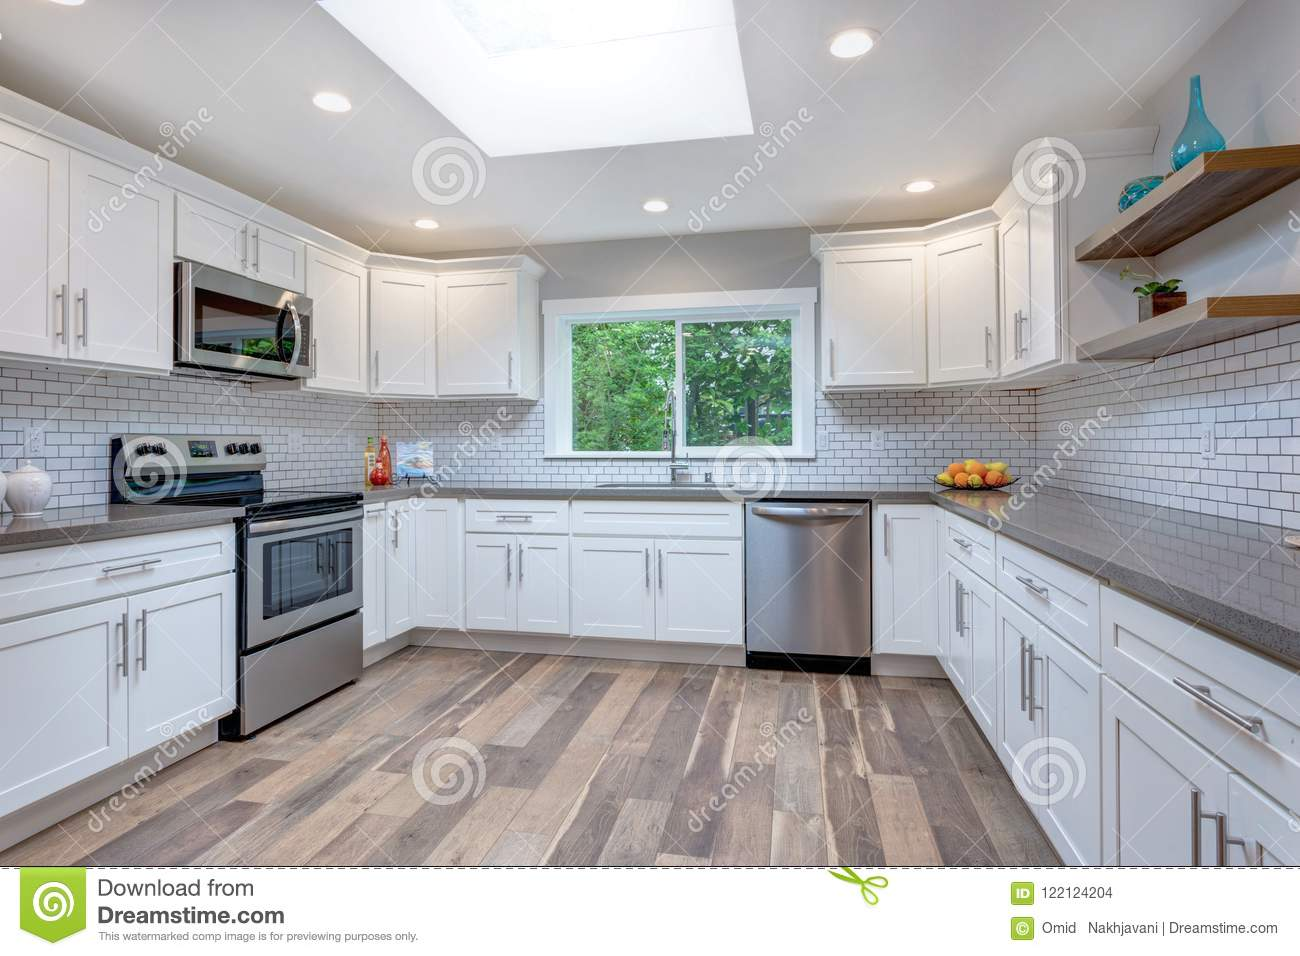 Phenomenal Open Concept Kitchen Equipped With Stainless Steel Interior Design Ideas Inesswwsoteloinfo